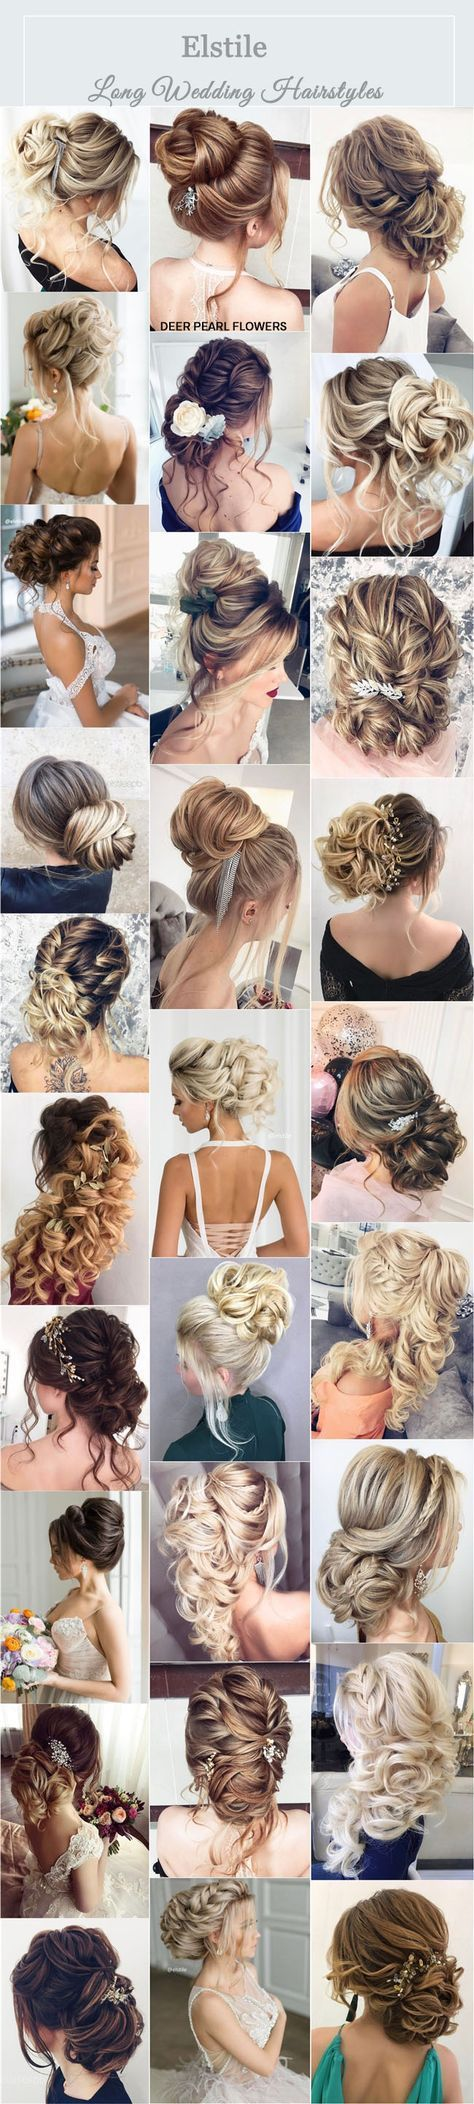 best wedding hairstyles for long hair up dos hair style and